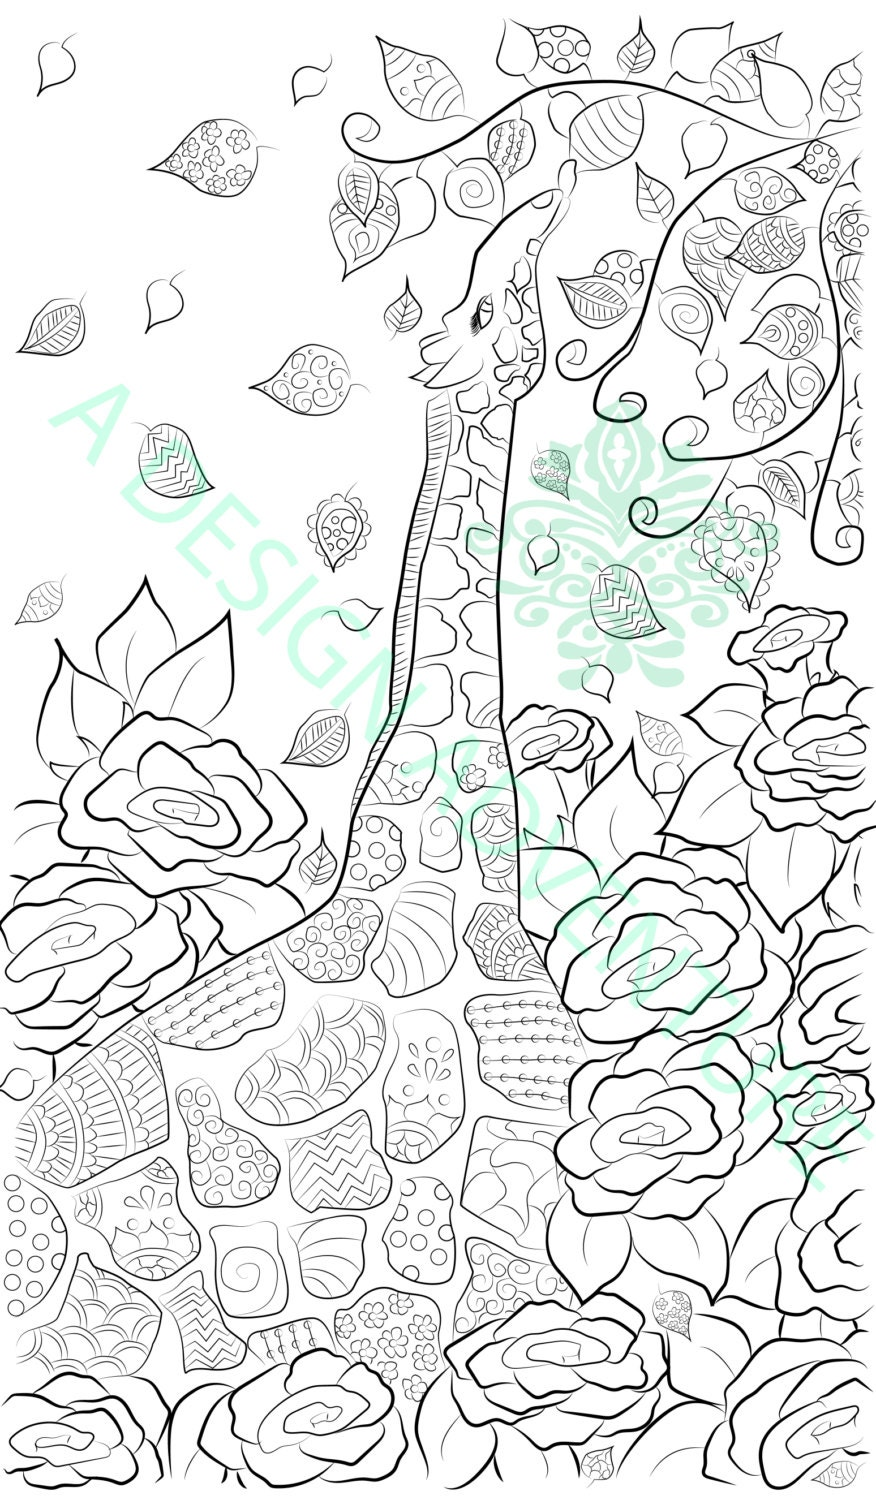 Printable Quilting Patterns For Coloring : Adult Coloring Page Printable Simple Pattern Giraffe Quilt